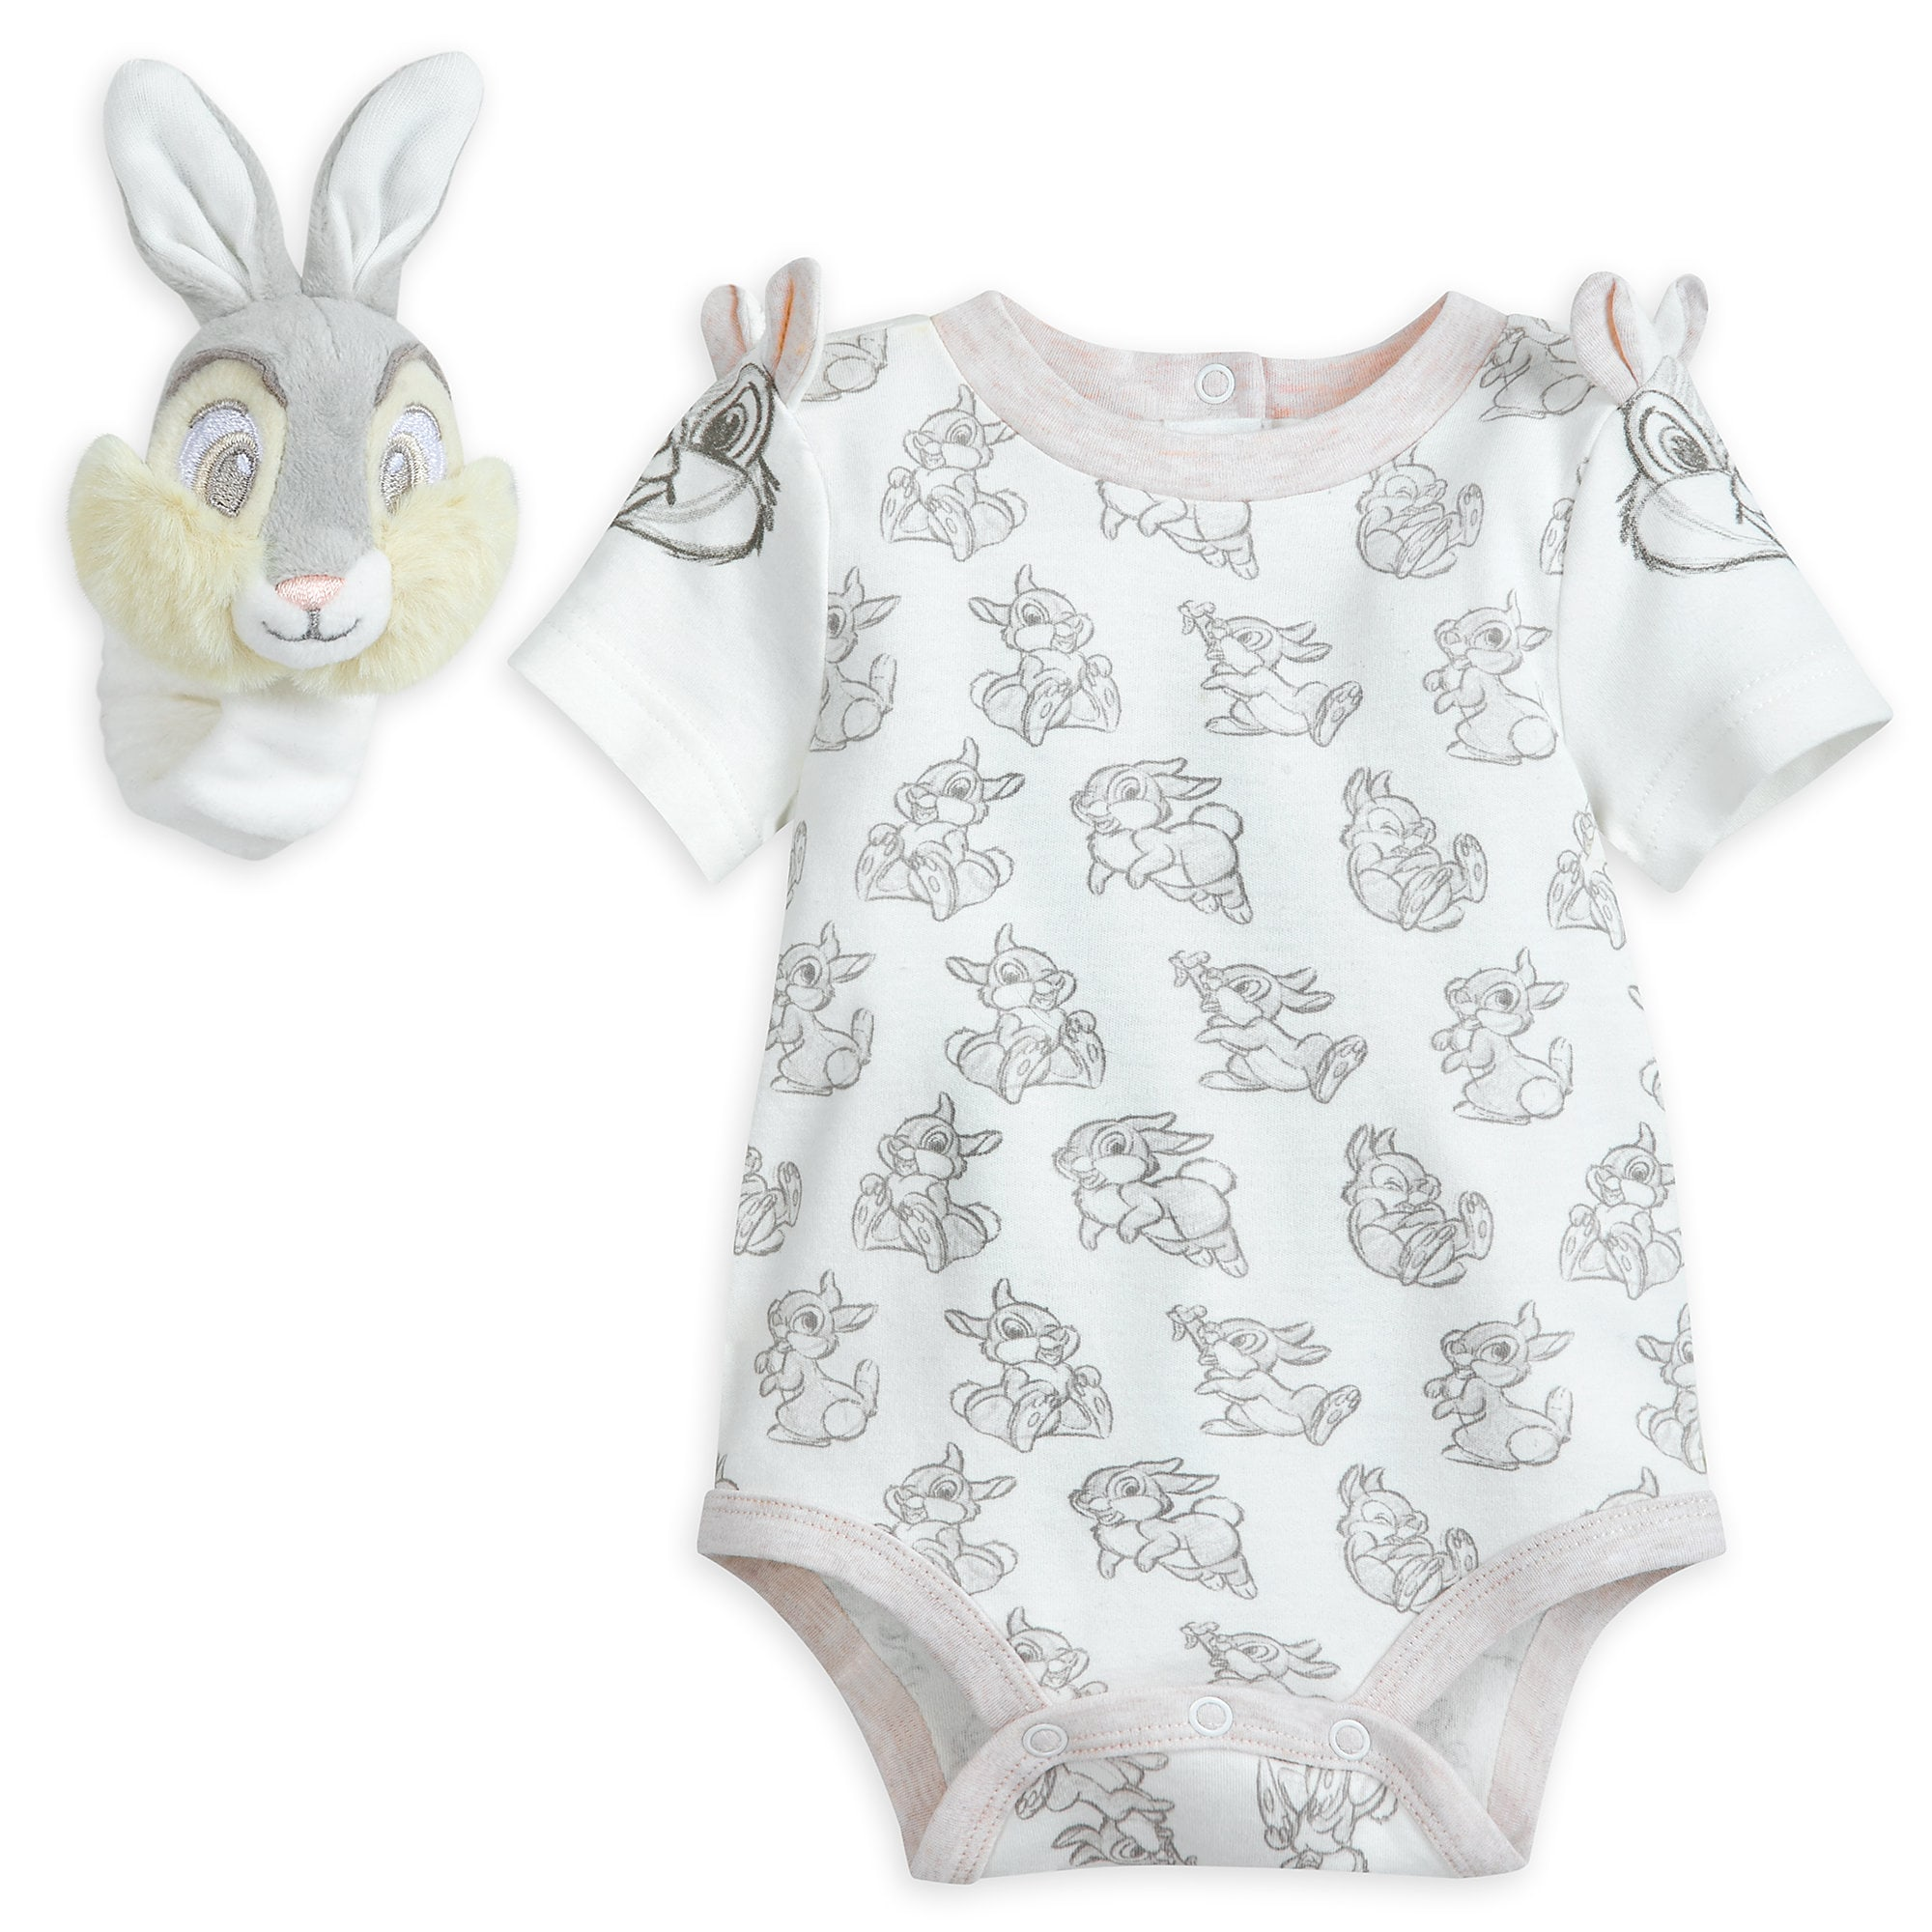 Thumper Bodysuit and Rattle Layette Set for Baby